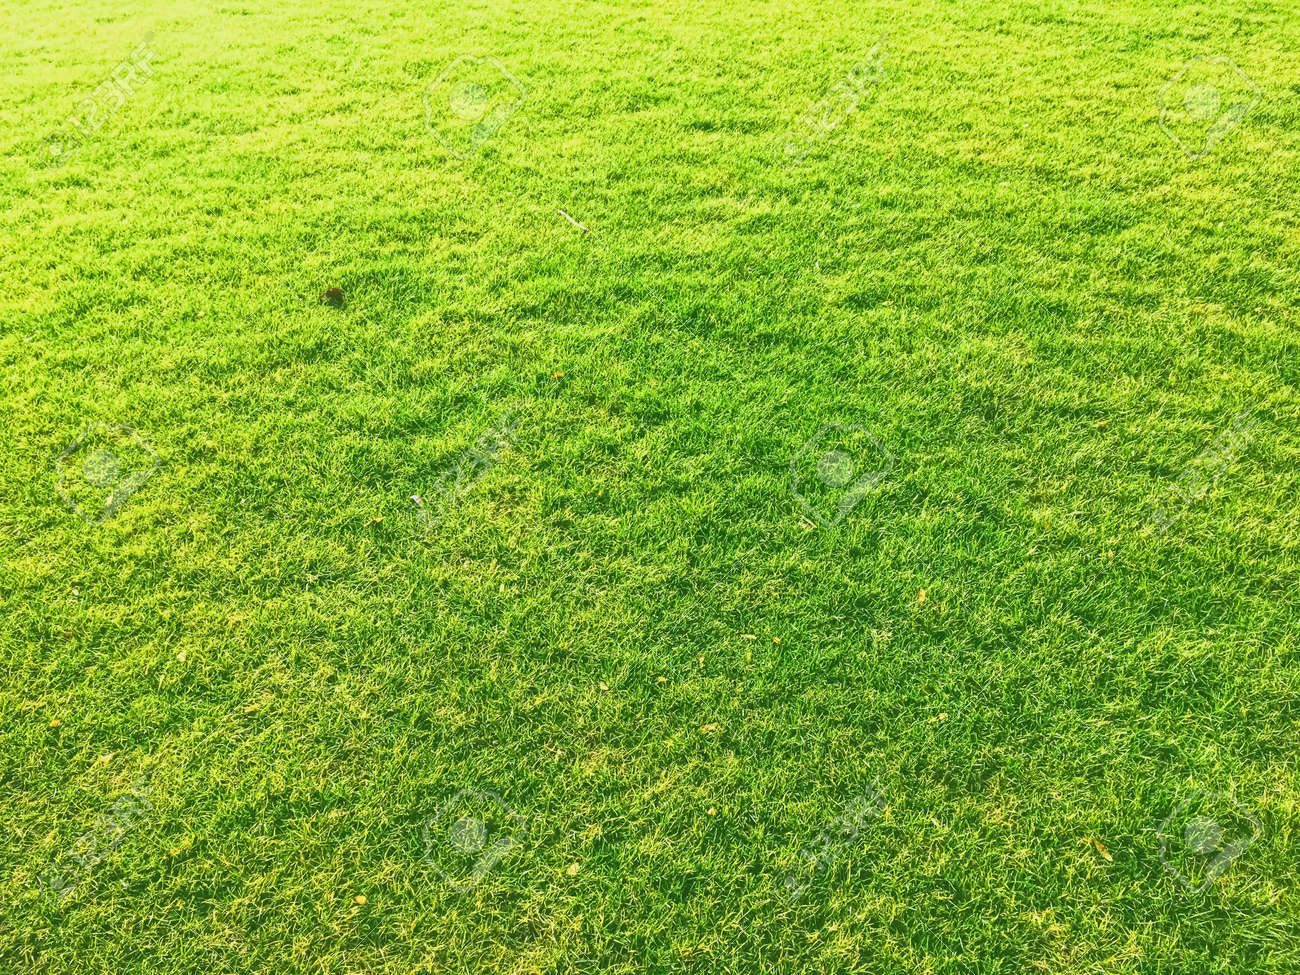 Green grass lawn as background, nature and backyard - 147131017